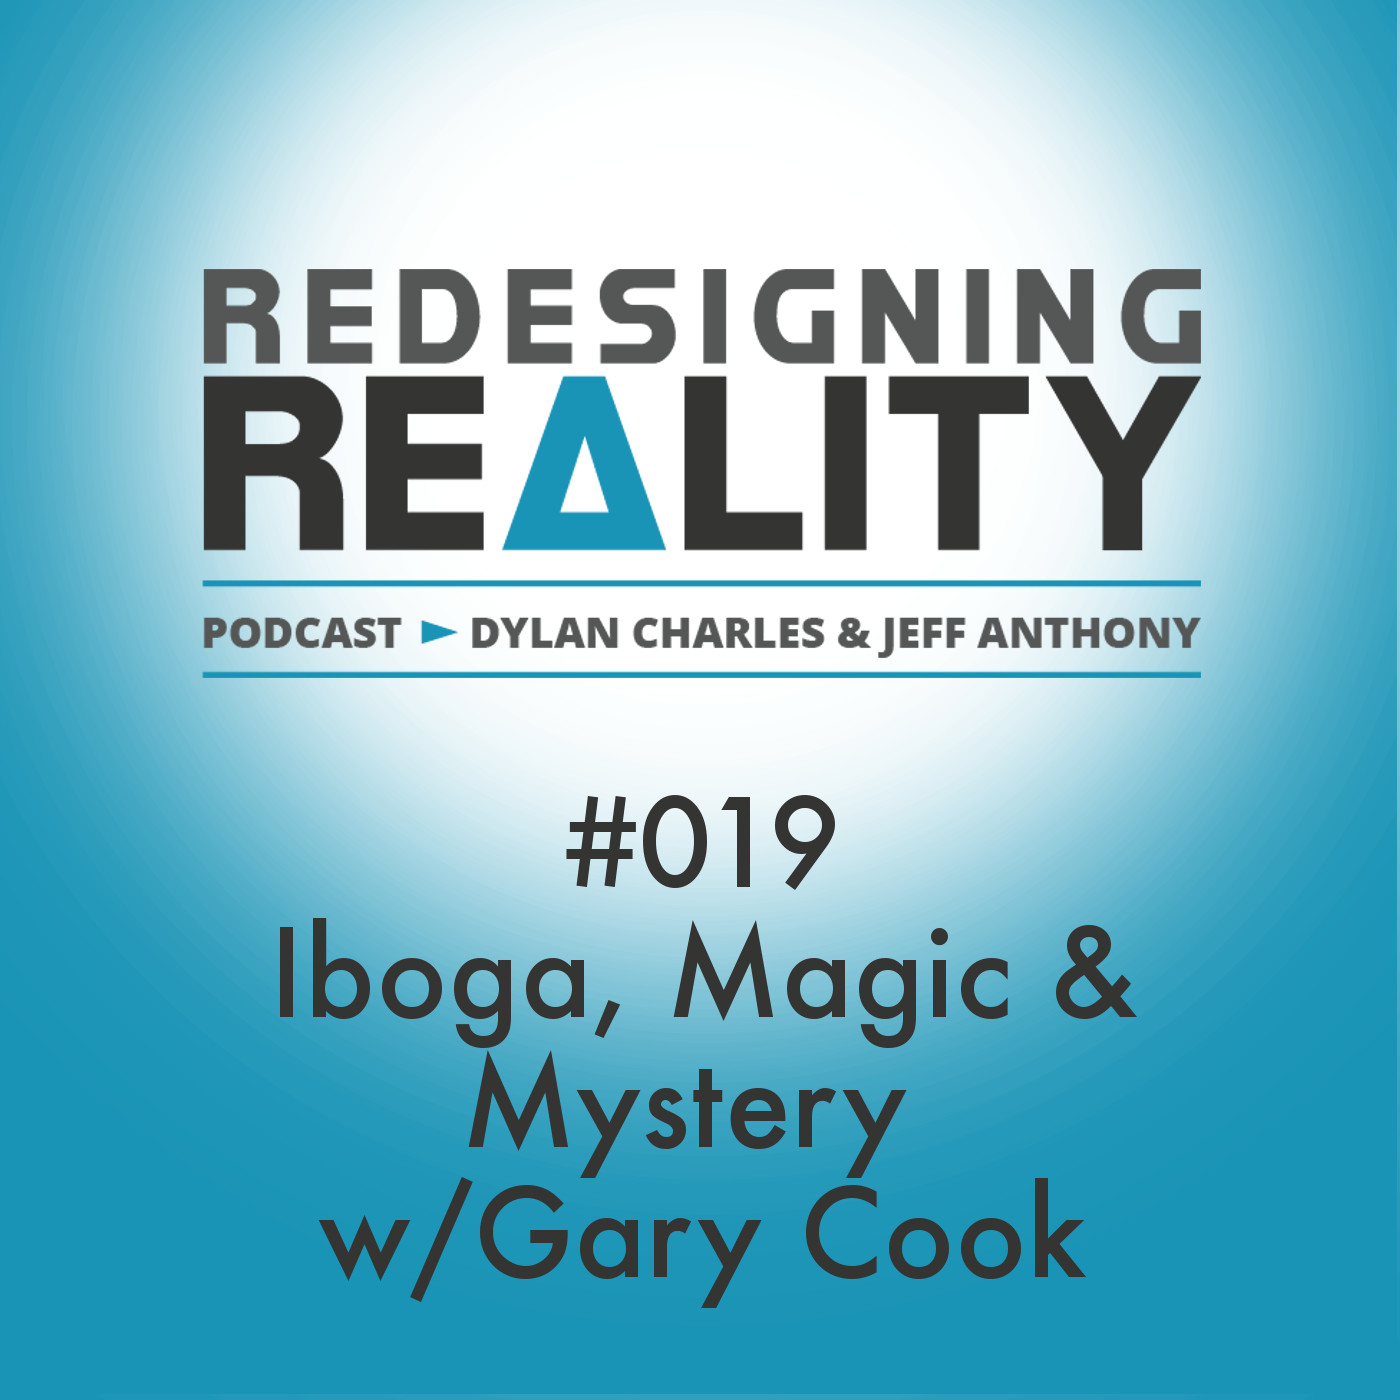 Artwork for Redesigning Reality #019 - Iboga, Magic & Mystery with Gary Cook